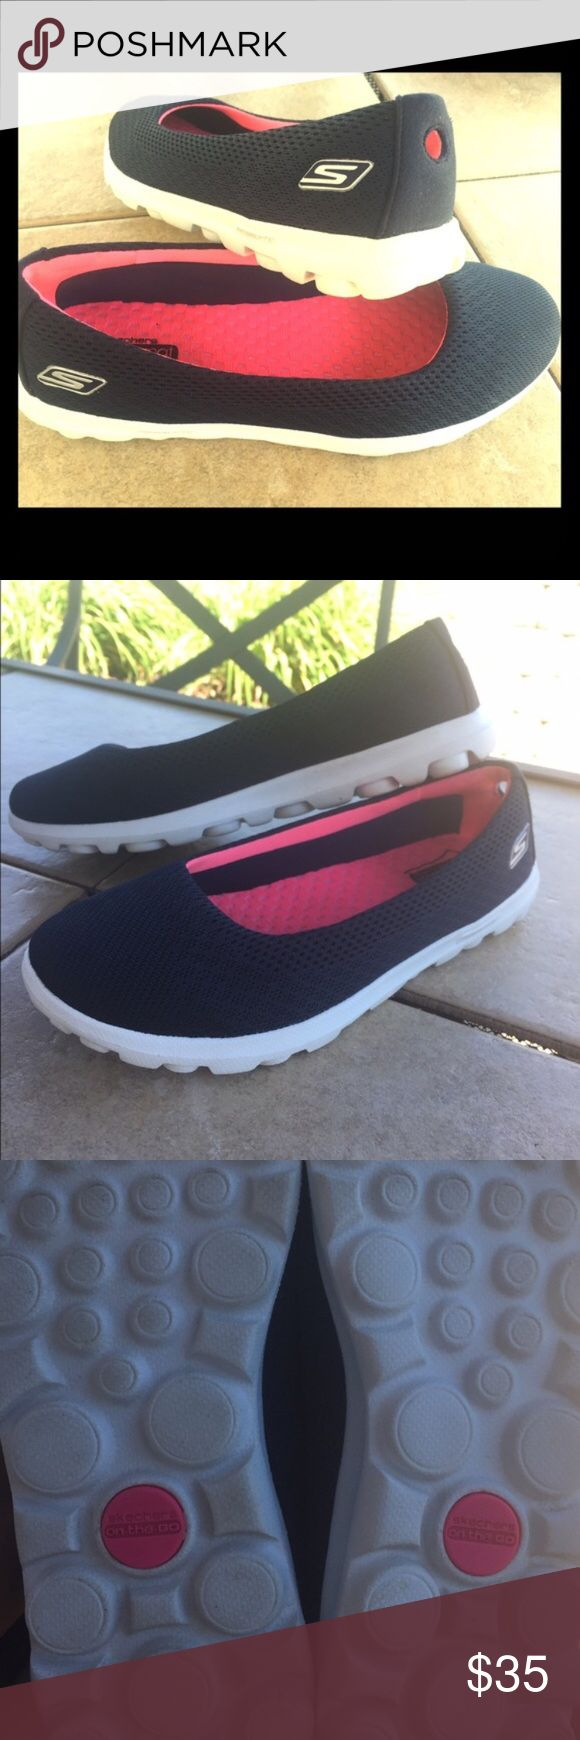 Sketchers Goga Mat Resalyte Shoes Women's Sketchers Goga Mat Resalyte shoes. Dark navy blue with bright beautiful pink soles for a cool contrast/accent.  Worn once for maybe an hour or two. In new condition! Skechers Shoes